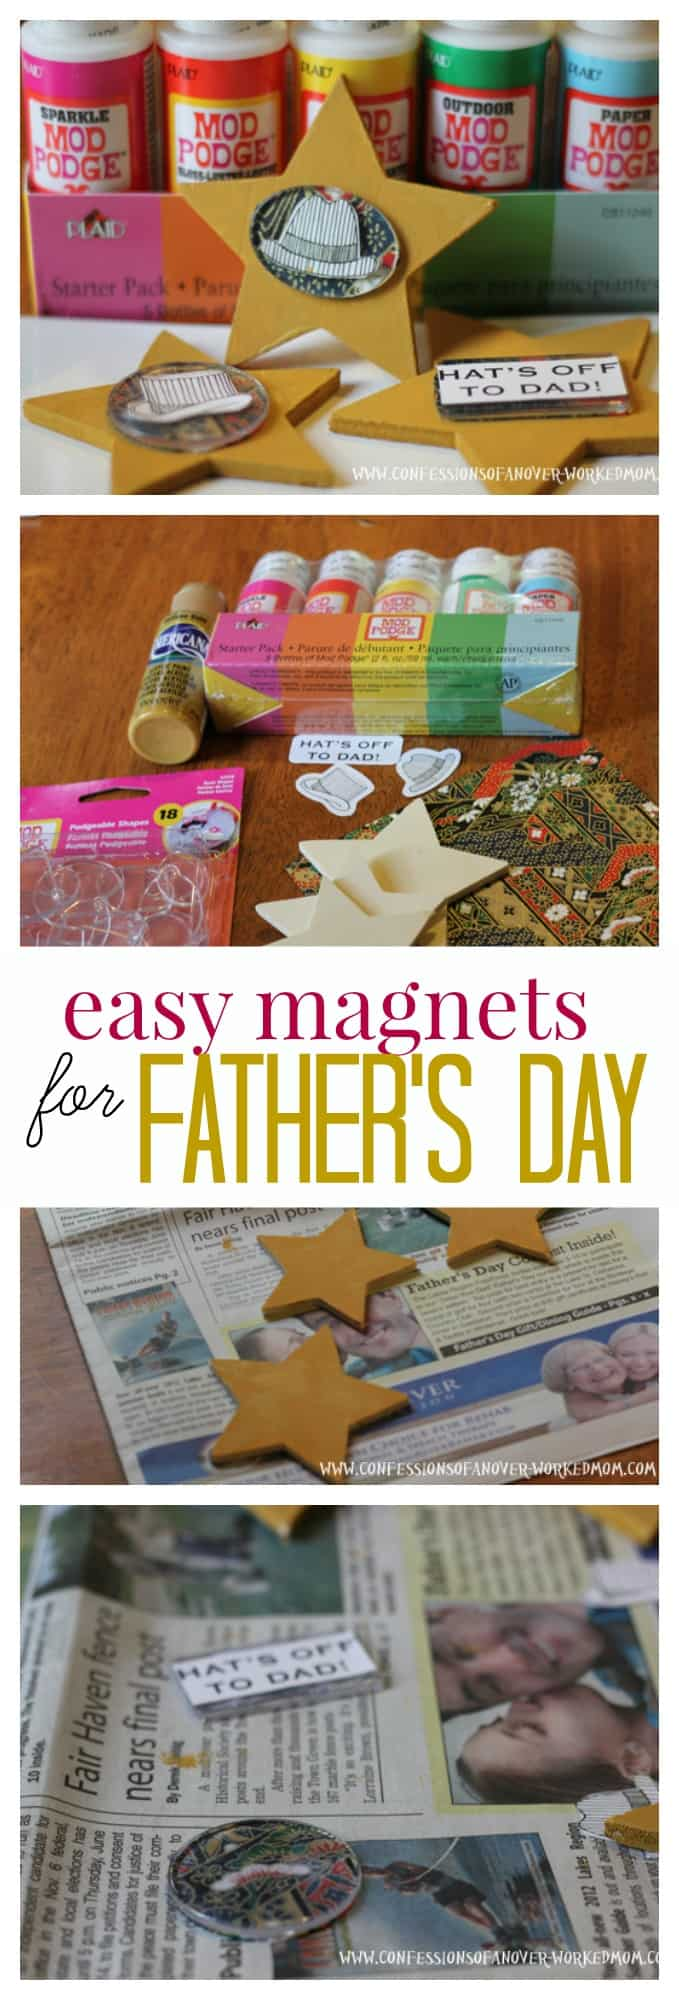 How to make your own magnets for Father's Day